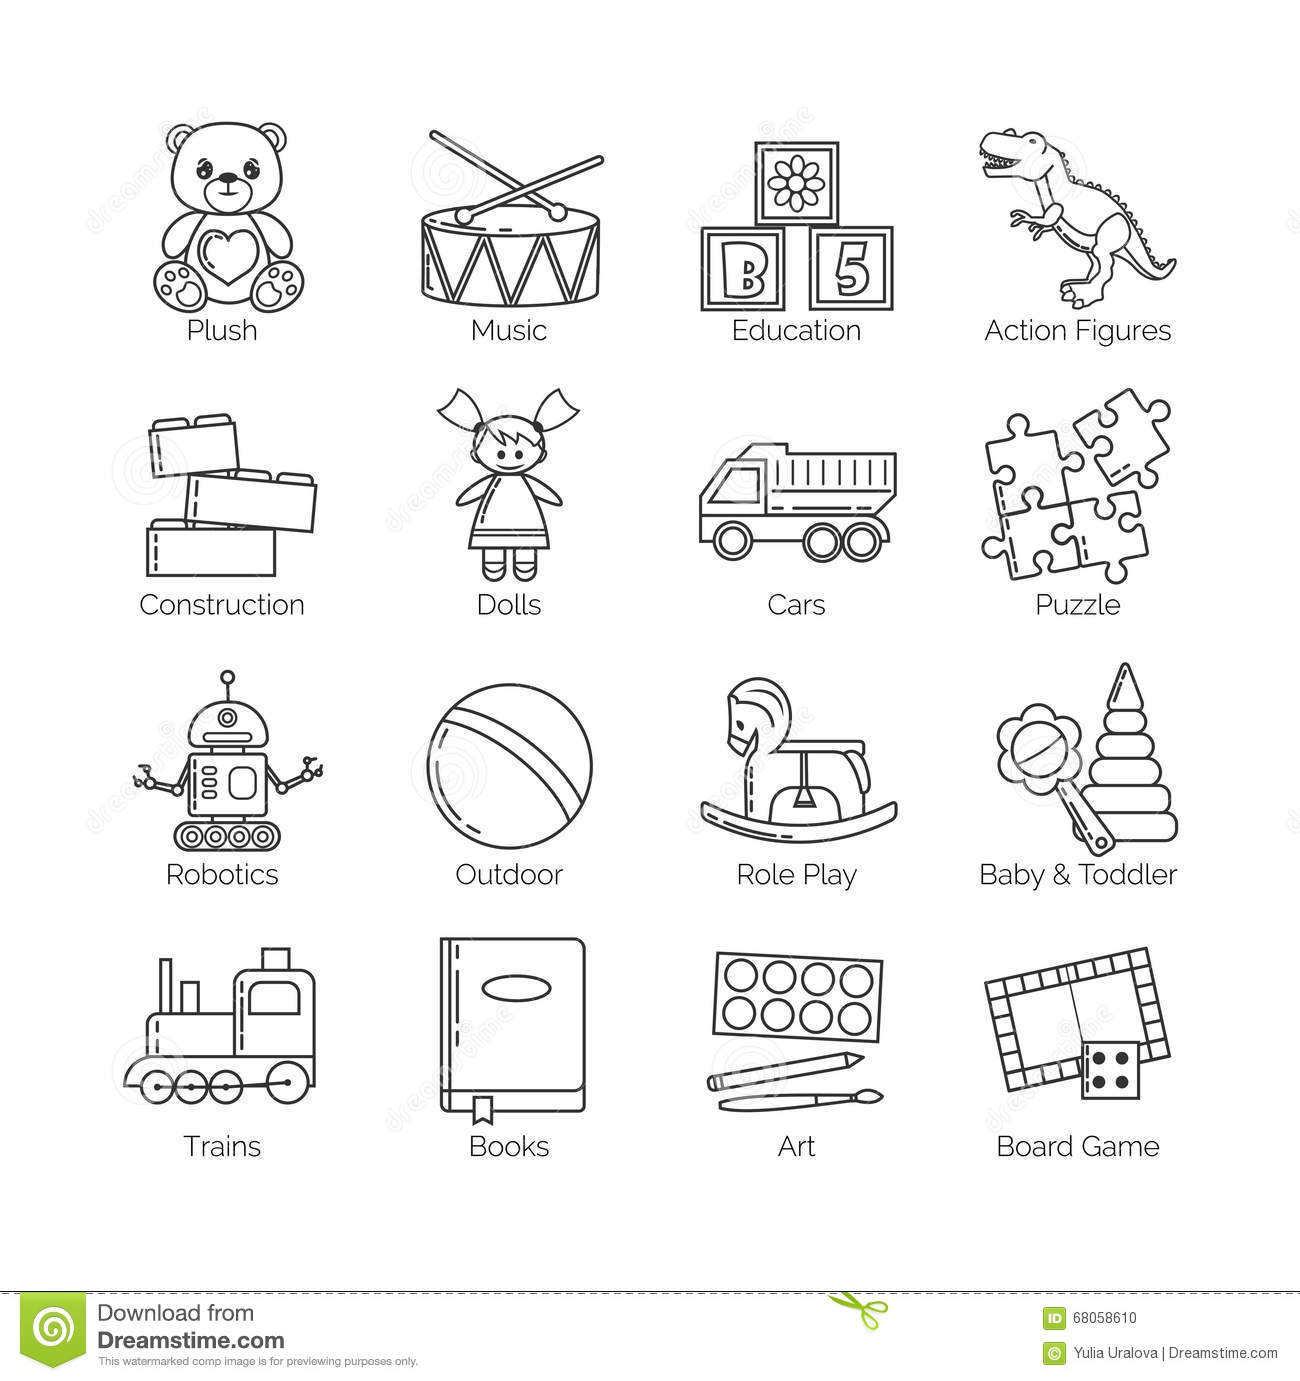 Worksheet On Toys